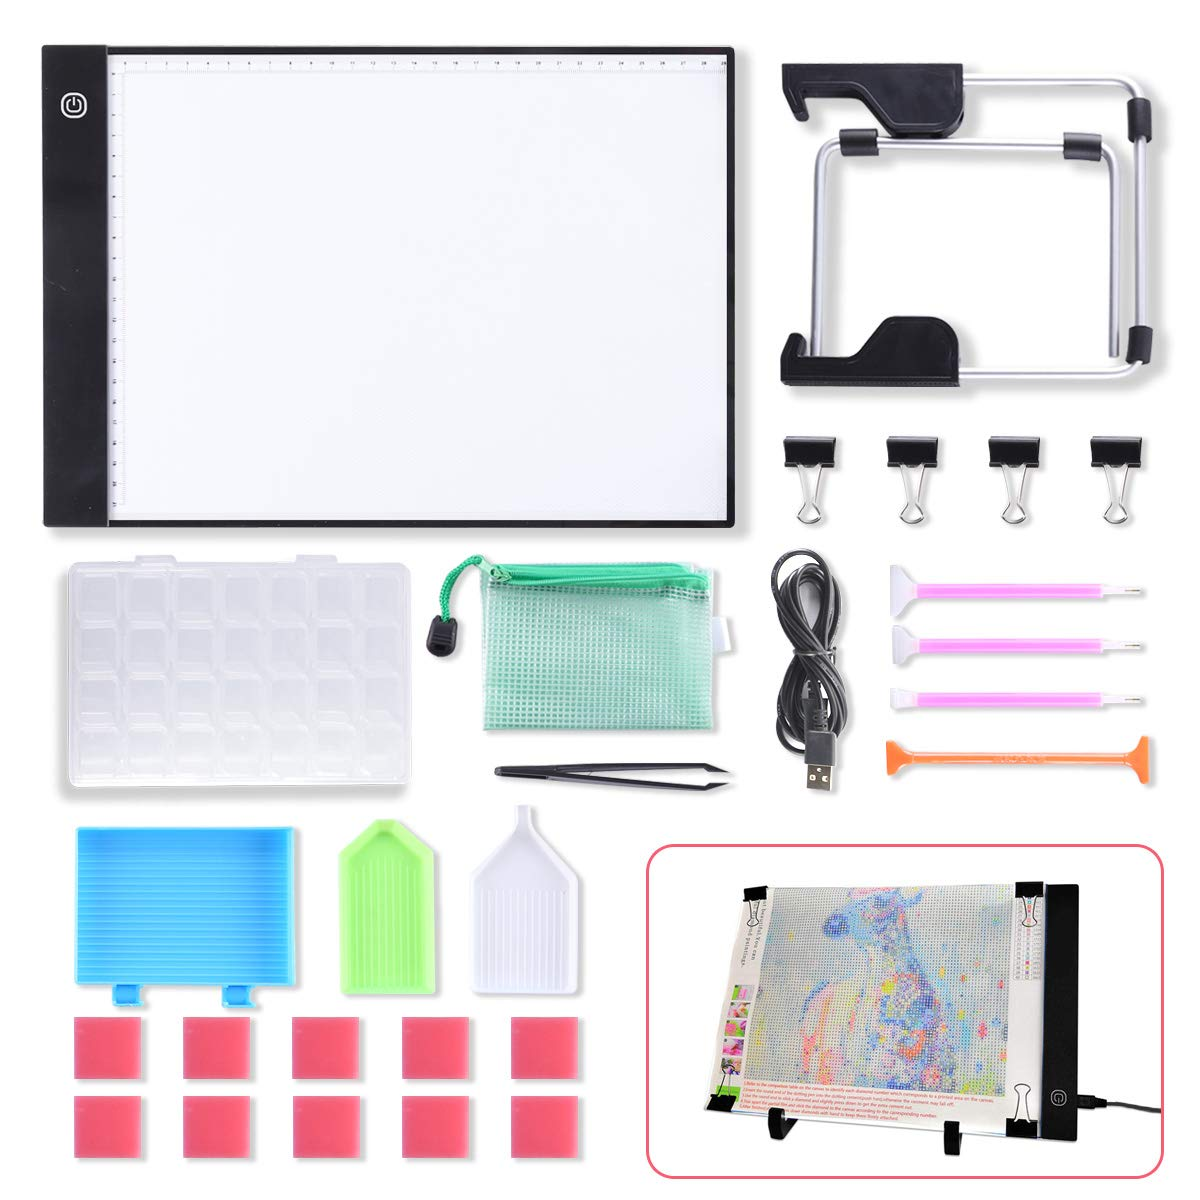 A4 LED Light Pad Light Board Tracing Light Box LED Light Tablet, Dimmable Light Board Kit with Diamond Painting Tools, Stand Holder and Clips, Apply to DIY 5D Diamond Painting Sketching Drawing by GROWNEER